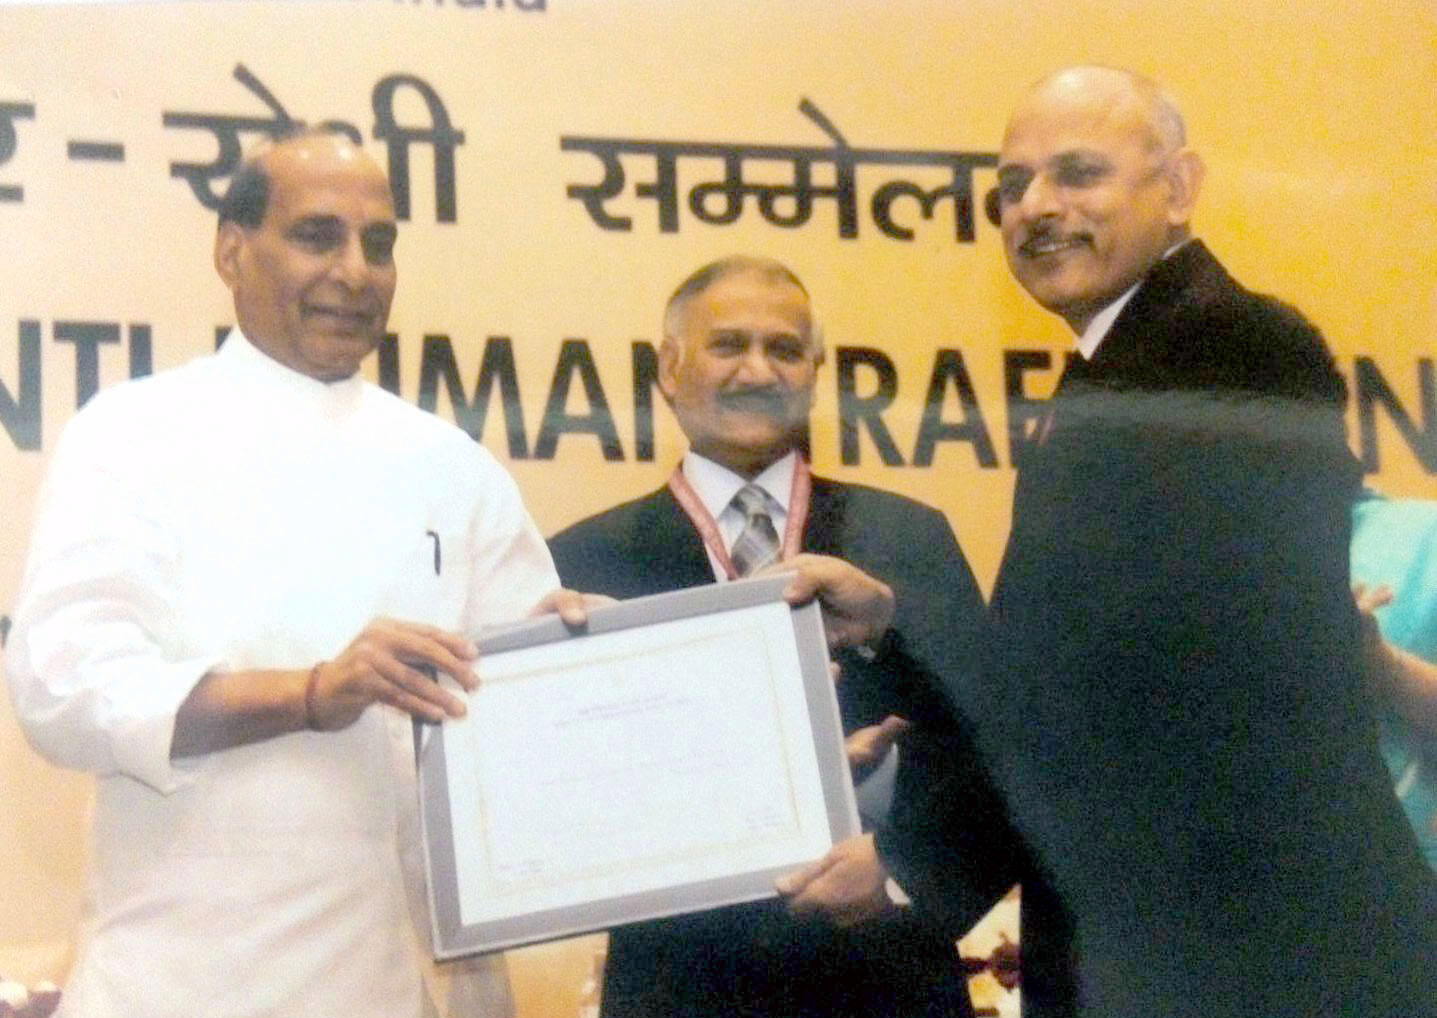 The Union Home Minister, Shri Rajnath Singh presenting the certificate to the Director General/RPF, Shri Rajiva Ranjan Verma for contribution of Railway Protection Force (RPF) 'Operation Smile', at the inauguration of the National Conference on Anti Human Trafficking, in New Delhi on October 07, 2015. The Director, CBI, Shri Anil Kumar Sinha is also seen.